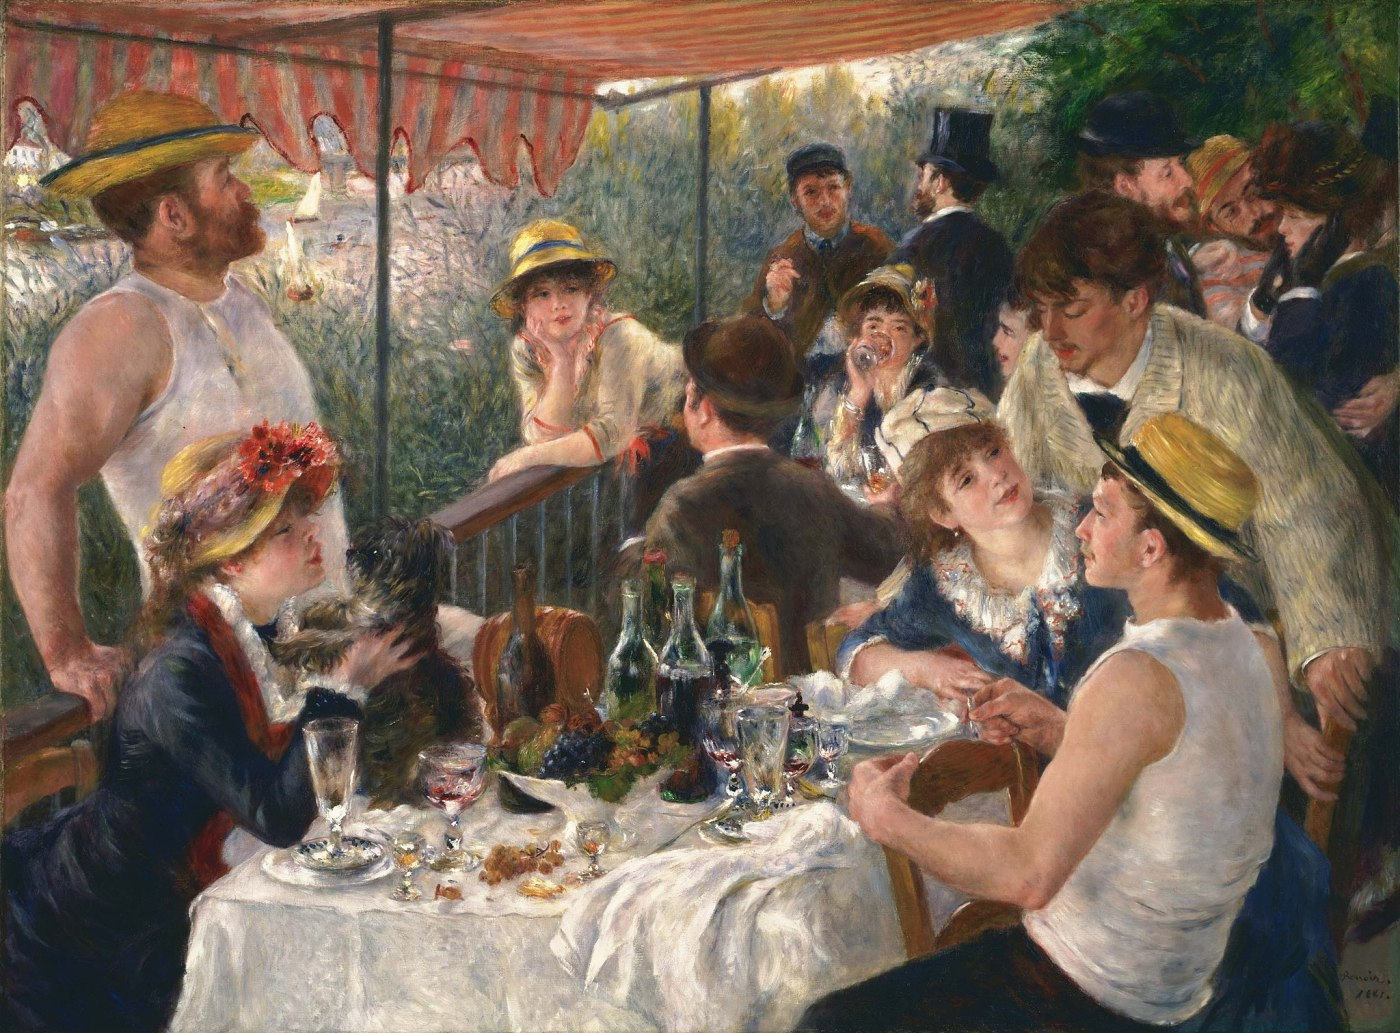 Auguste Renoir: Luncheon of the Boating Party [PUBLIC DOMAIN]